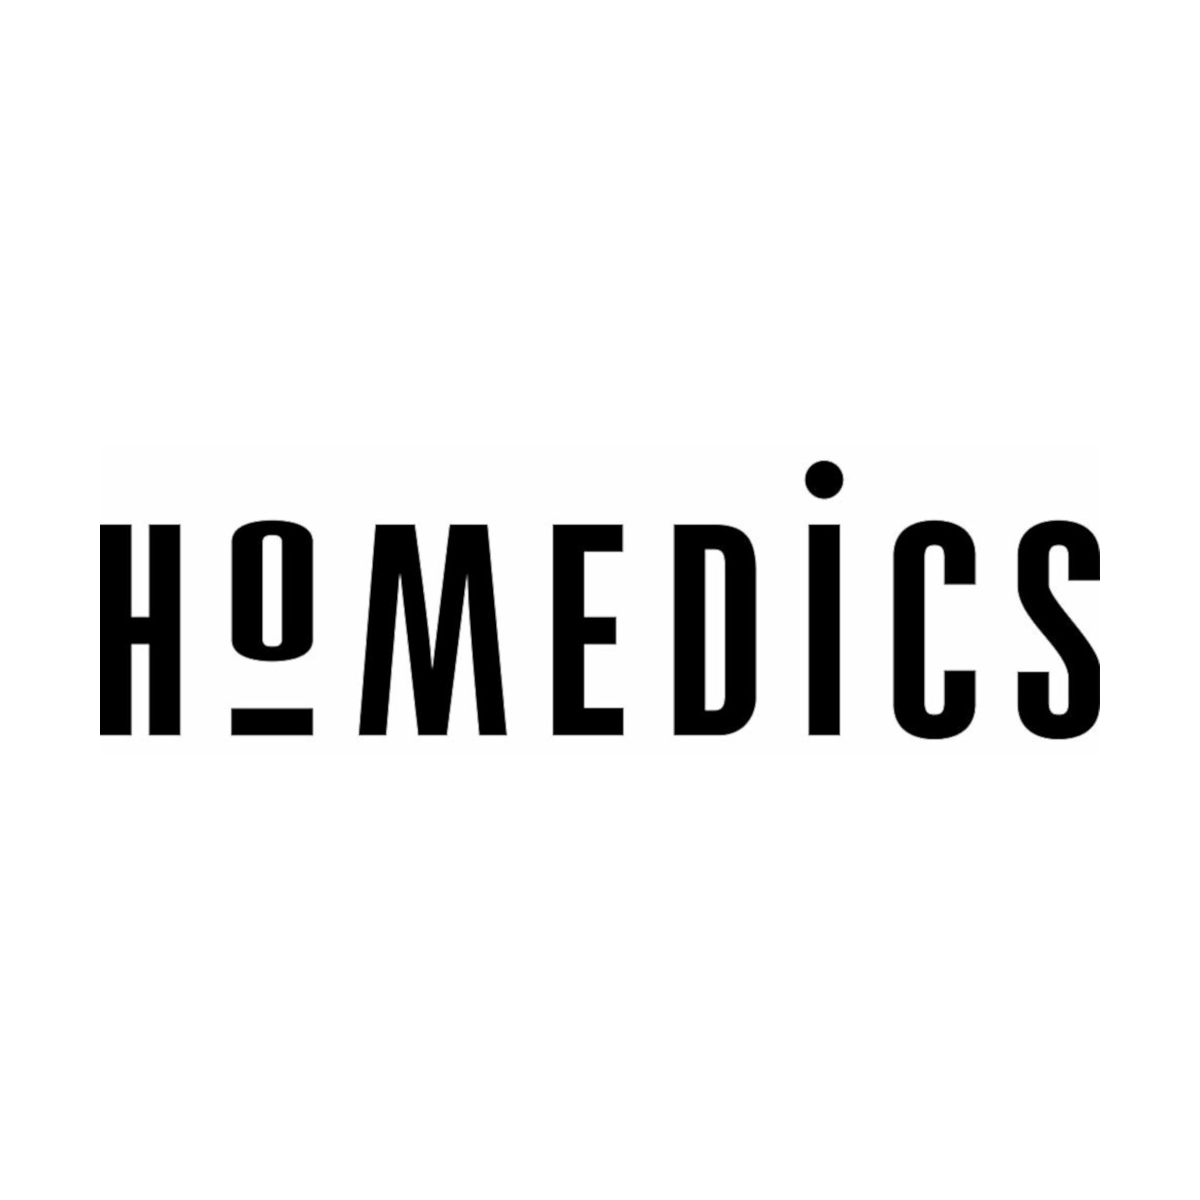 Homedics Coupons & Promo Codes